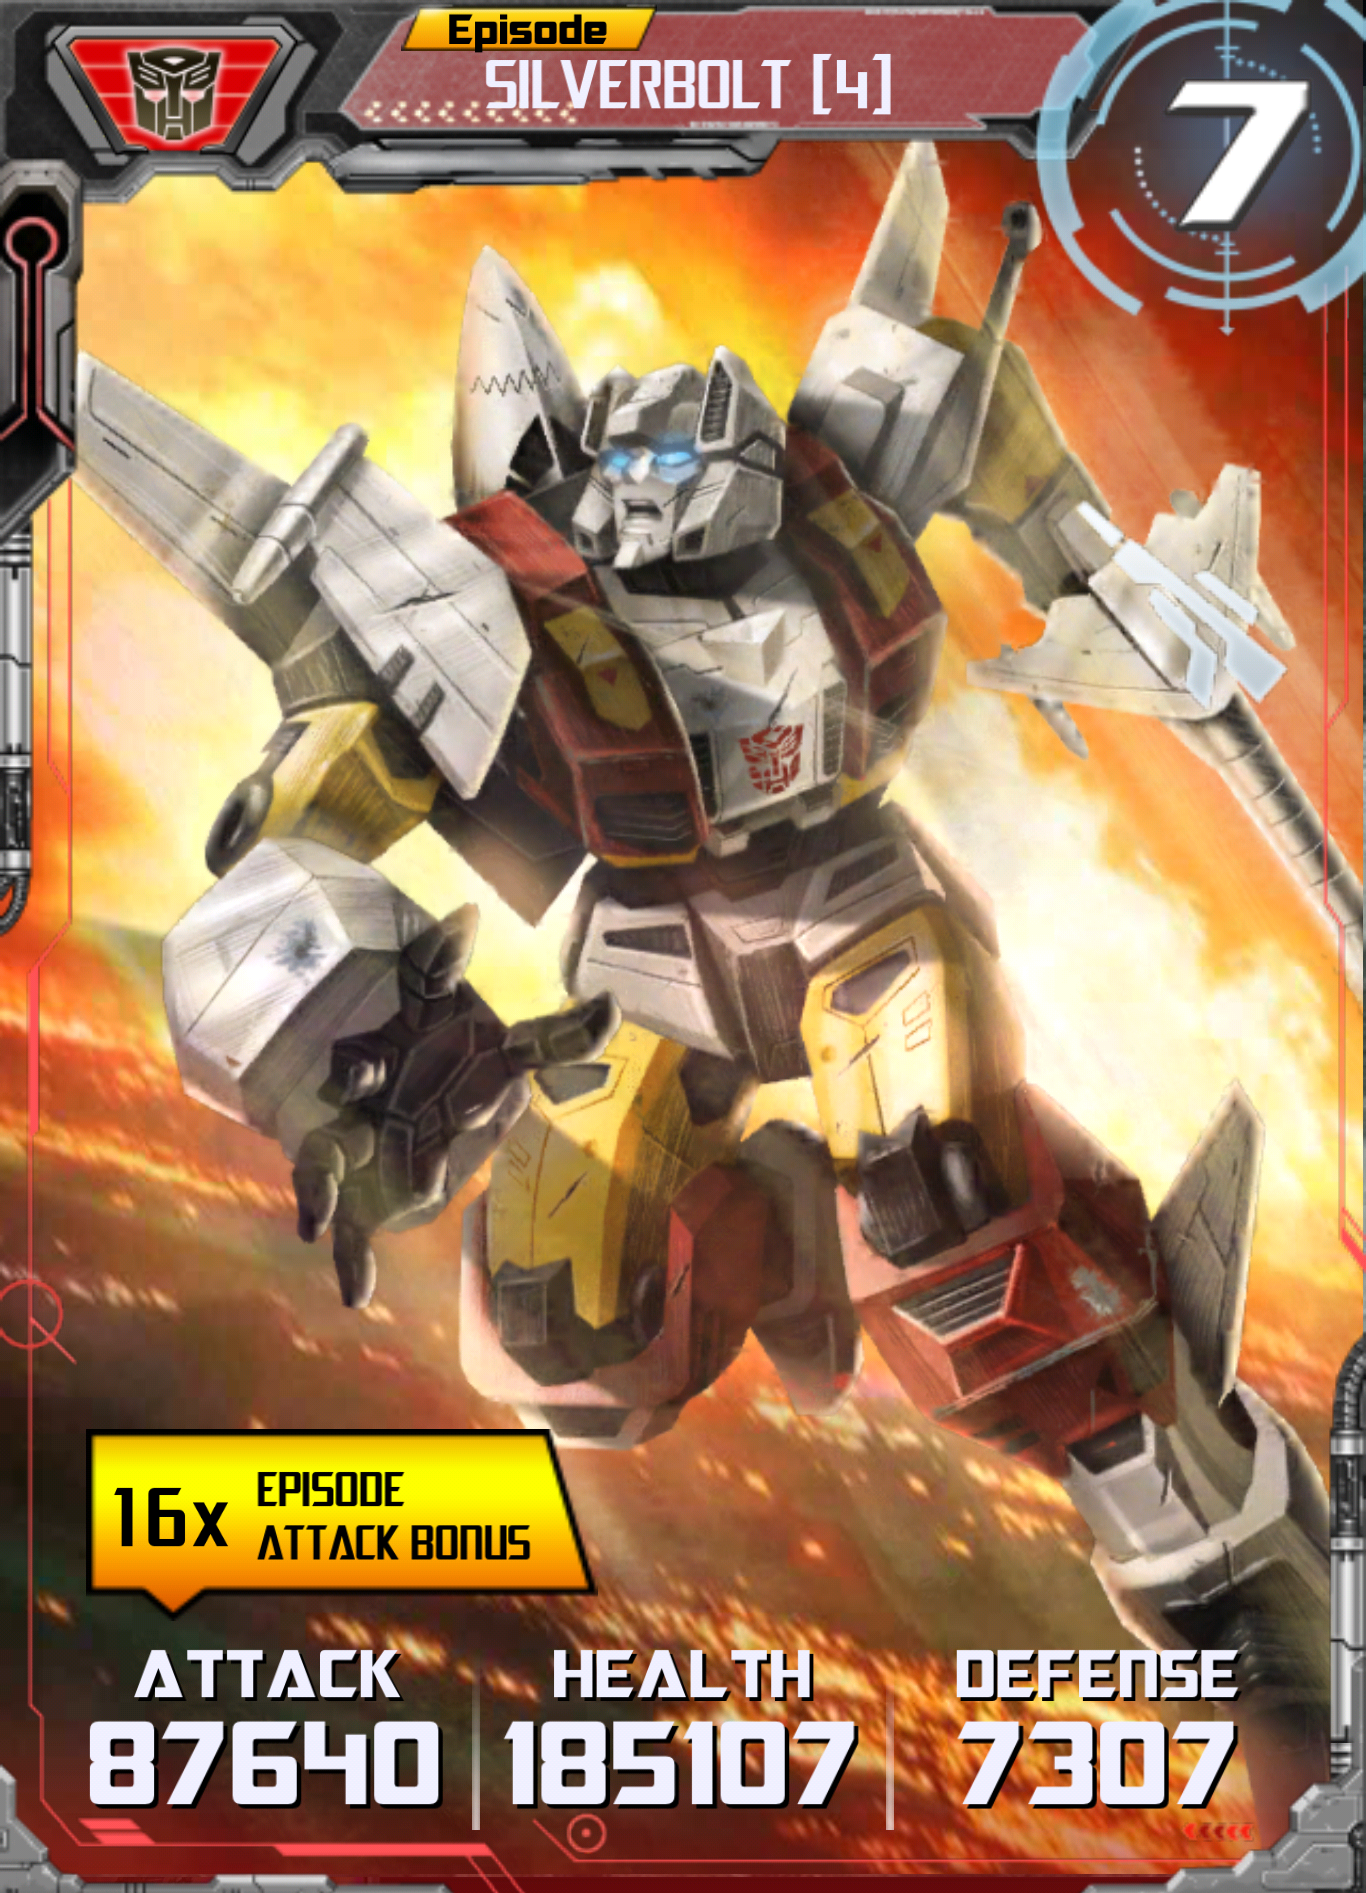 silverbolt (4) | transformers legends wiki | fandom poweredwikia